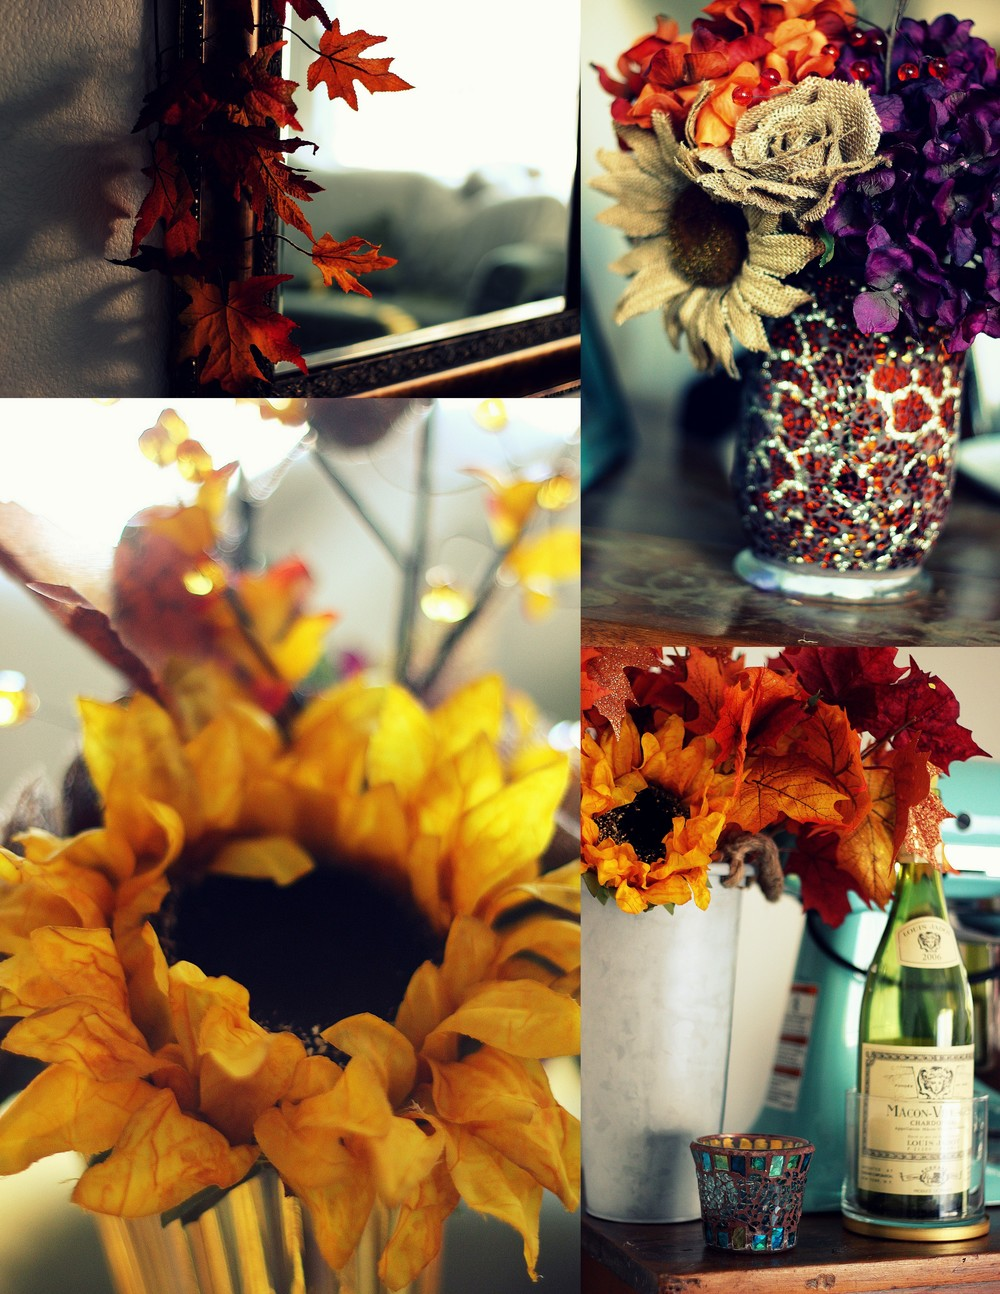 Splashes of fall decor